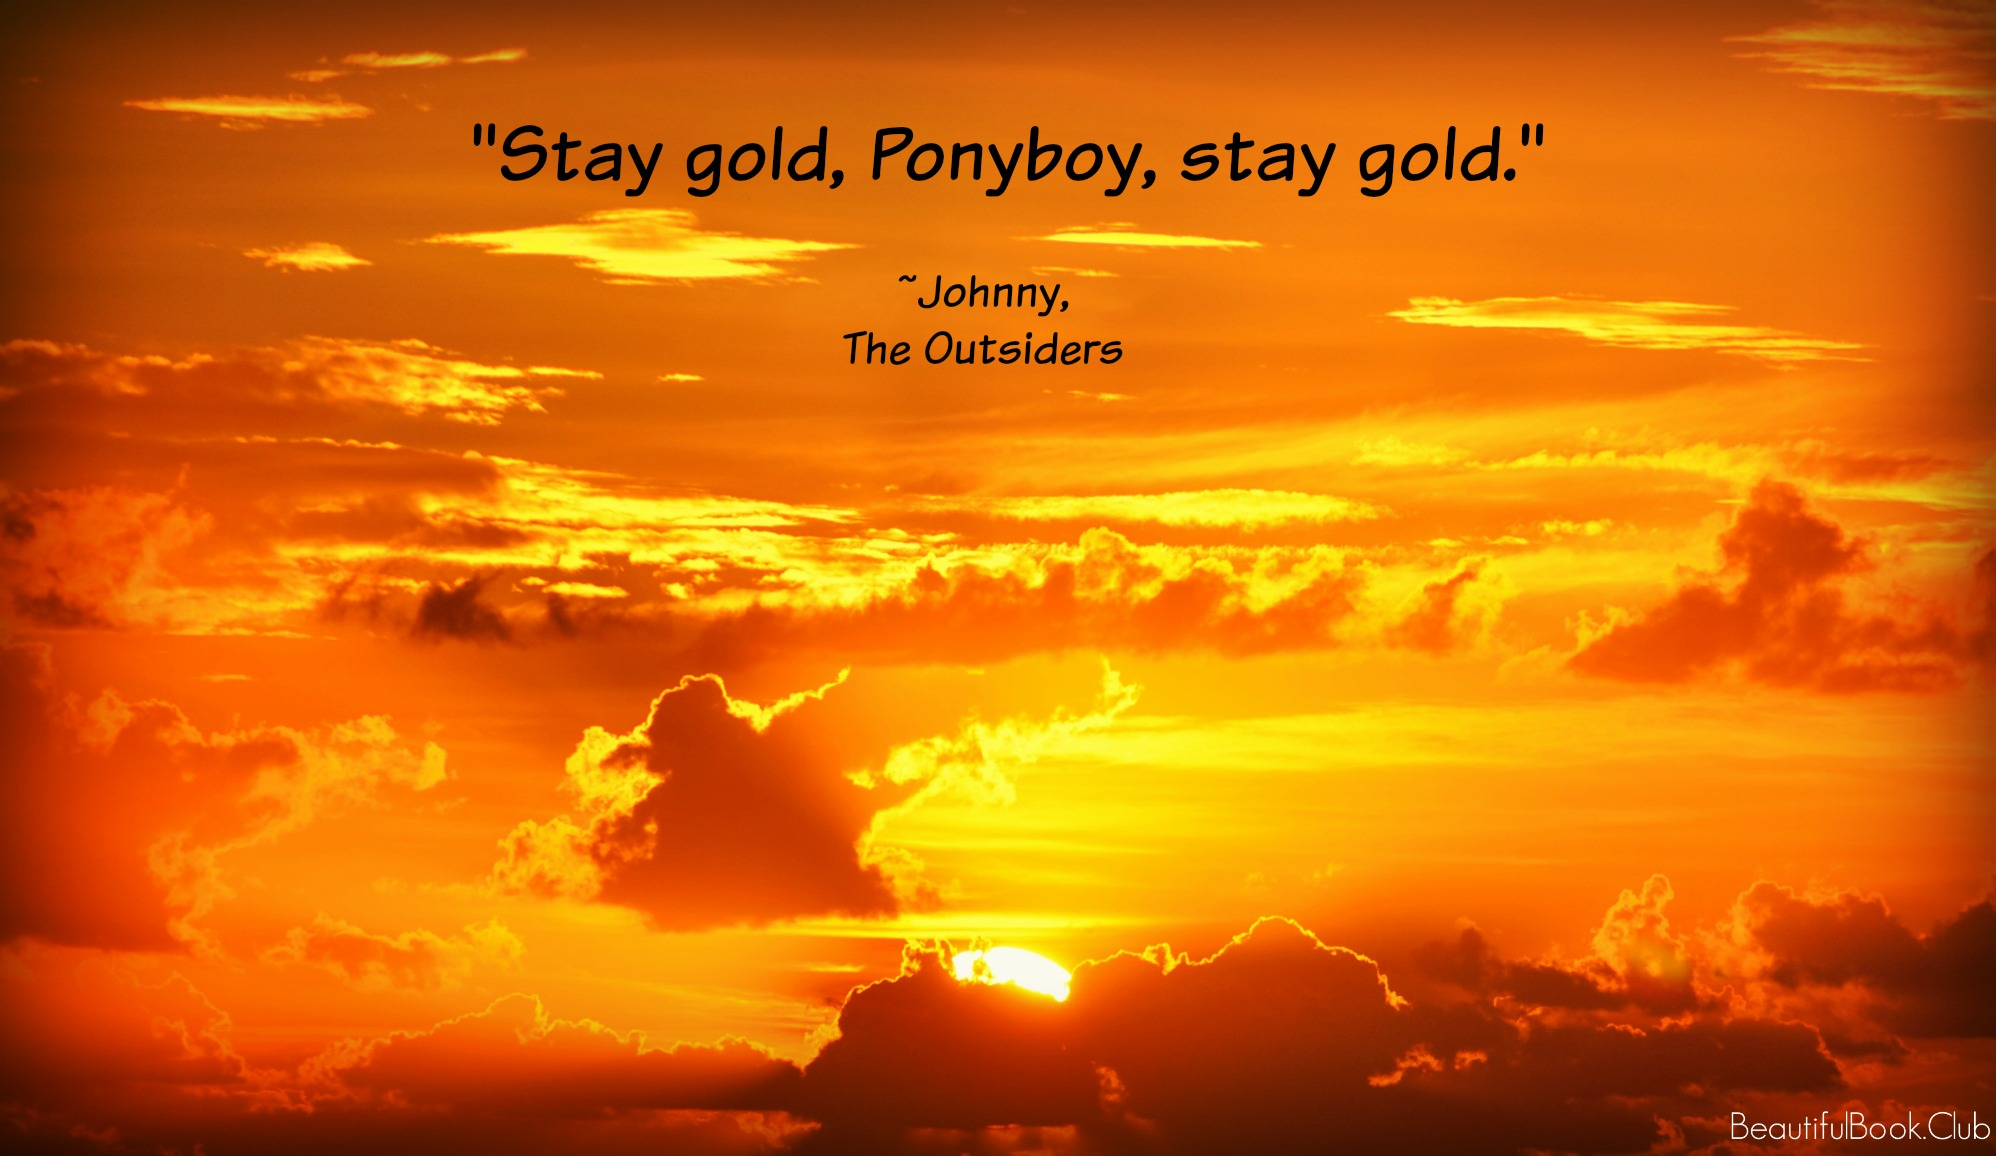 Stay gold, Ponyboy, stay gold _Jonny, The Outsiders by S.E. Hinton